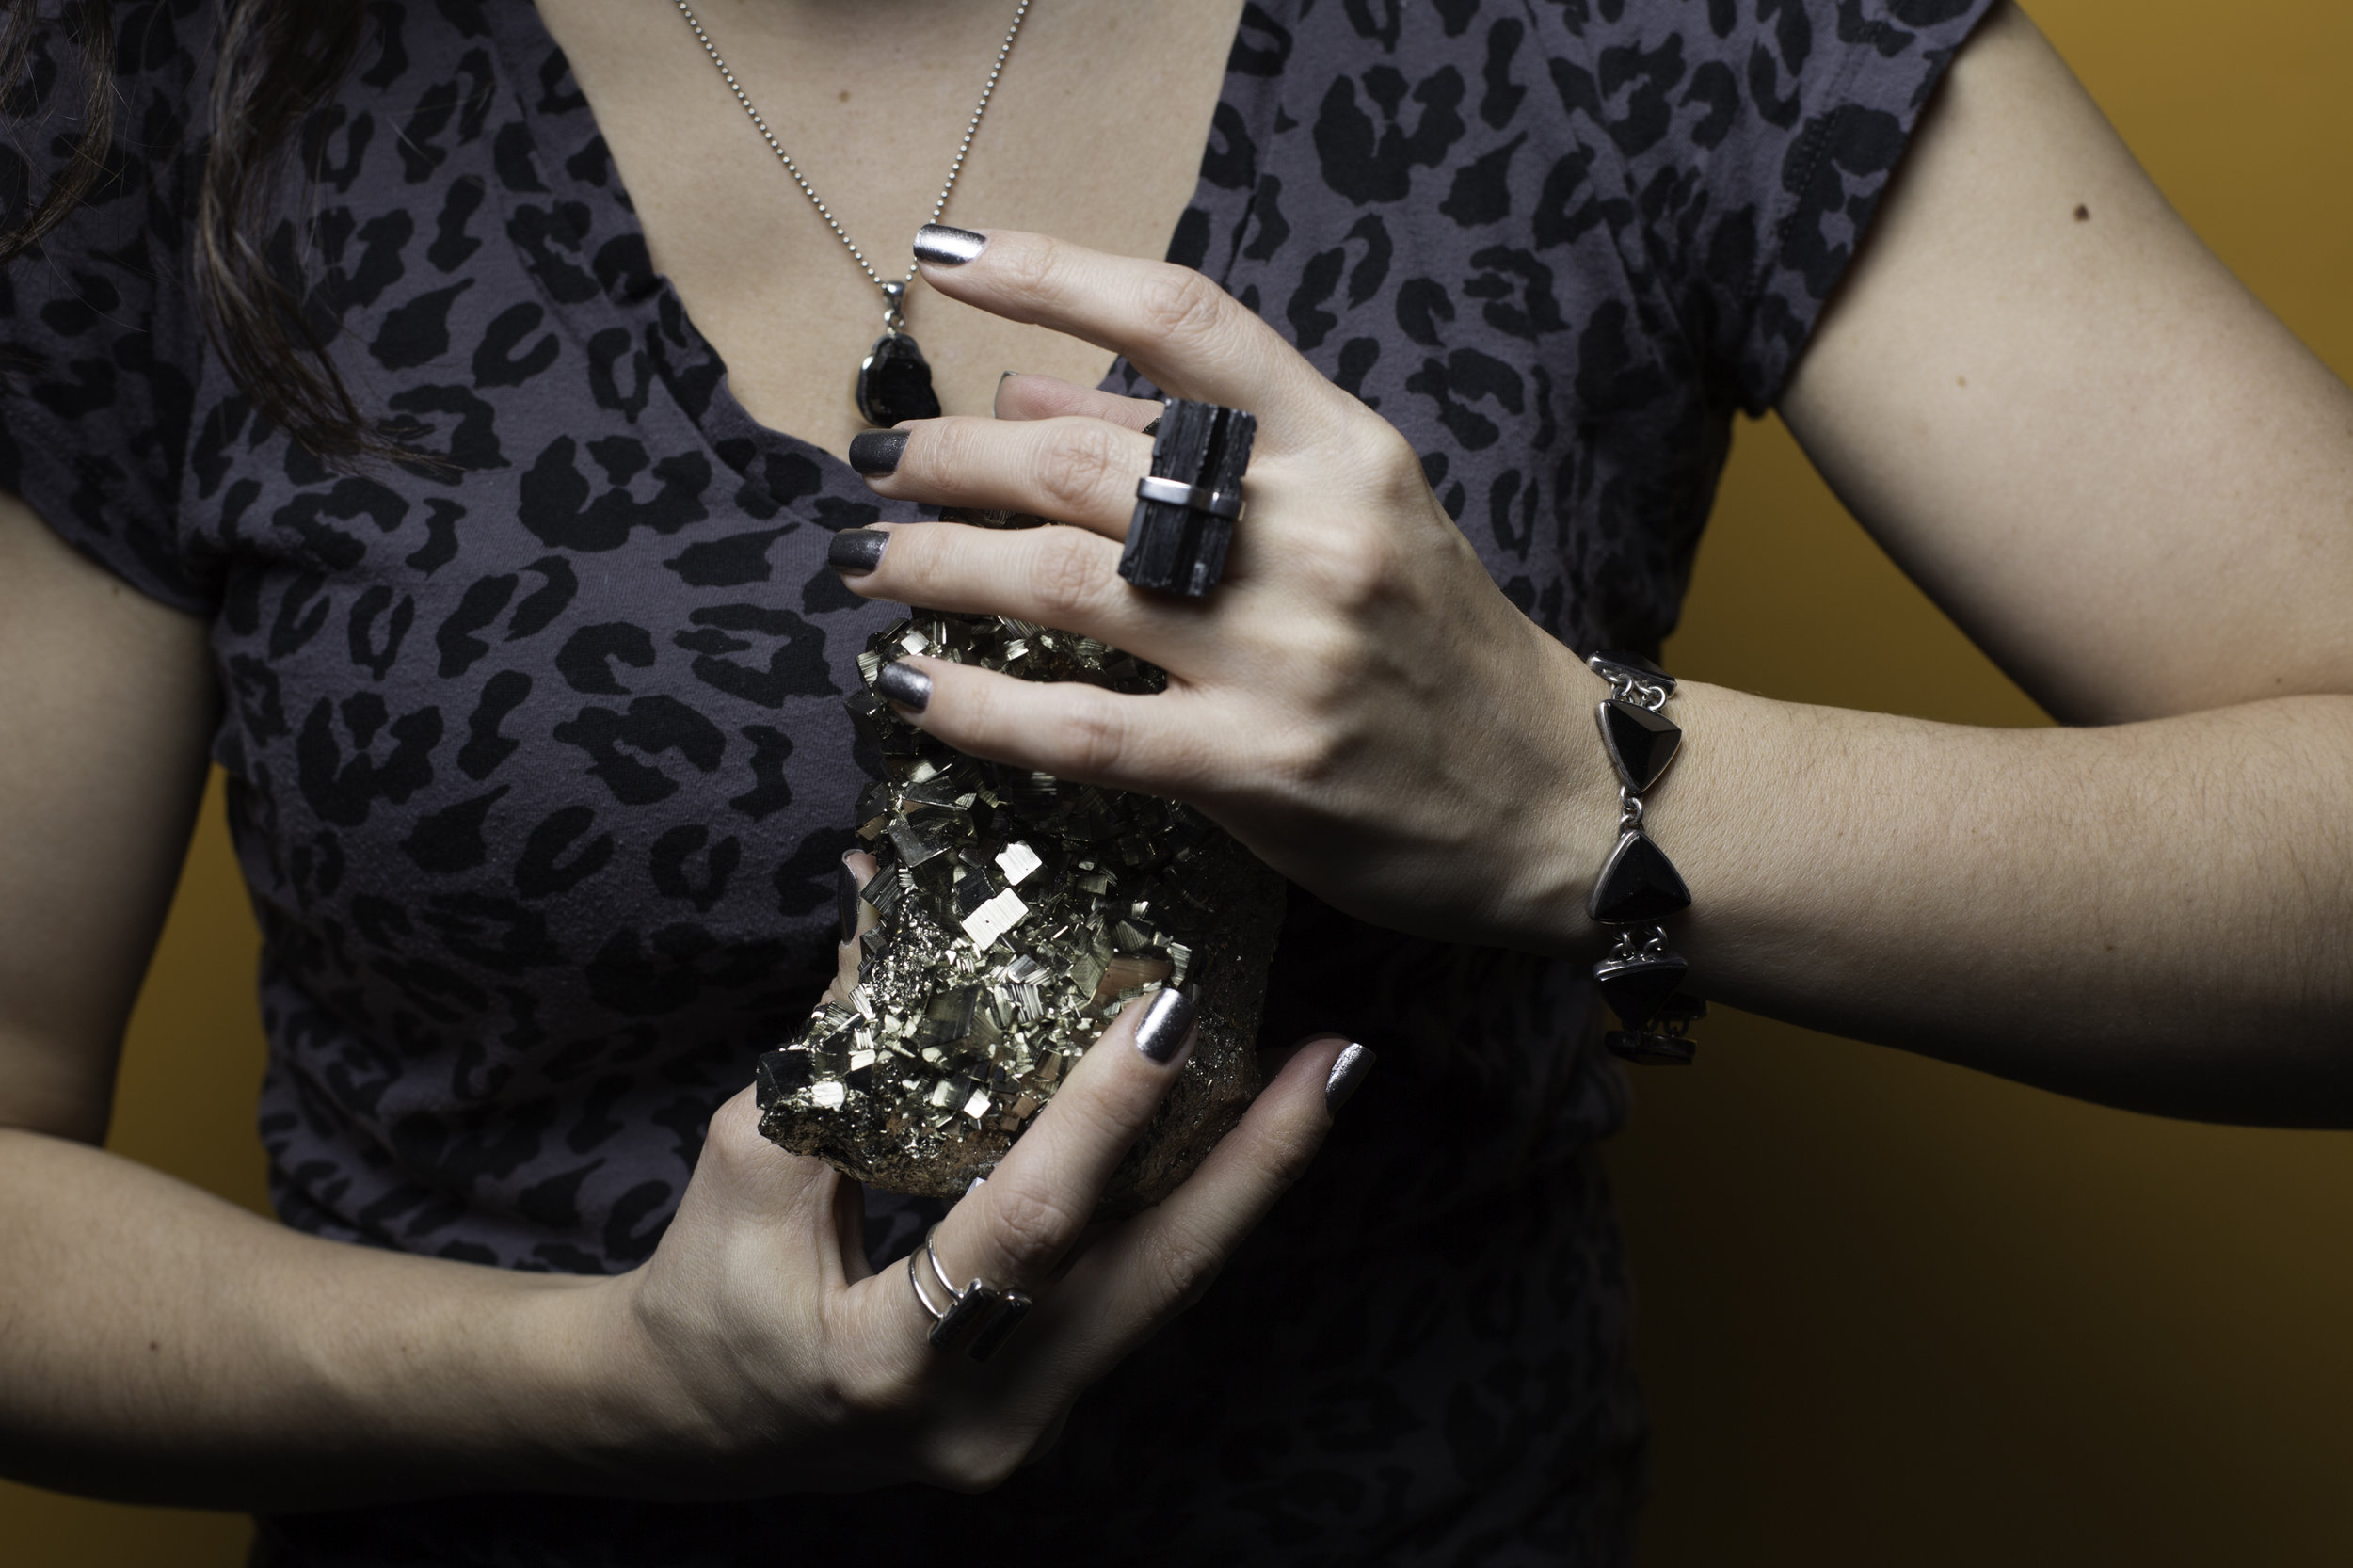 Wearing Made in Earth CollectionBlack Tourmaline Pendant, Black Tourmaline Open Front Ring (on my right hand), Black Tourmaline Ring (on my left hand), Black Tourmaline Bracelet, and I'm holding a Pyrite Cluster. Please see below for the energetic properties of the stones.